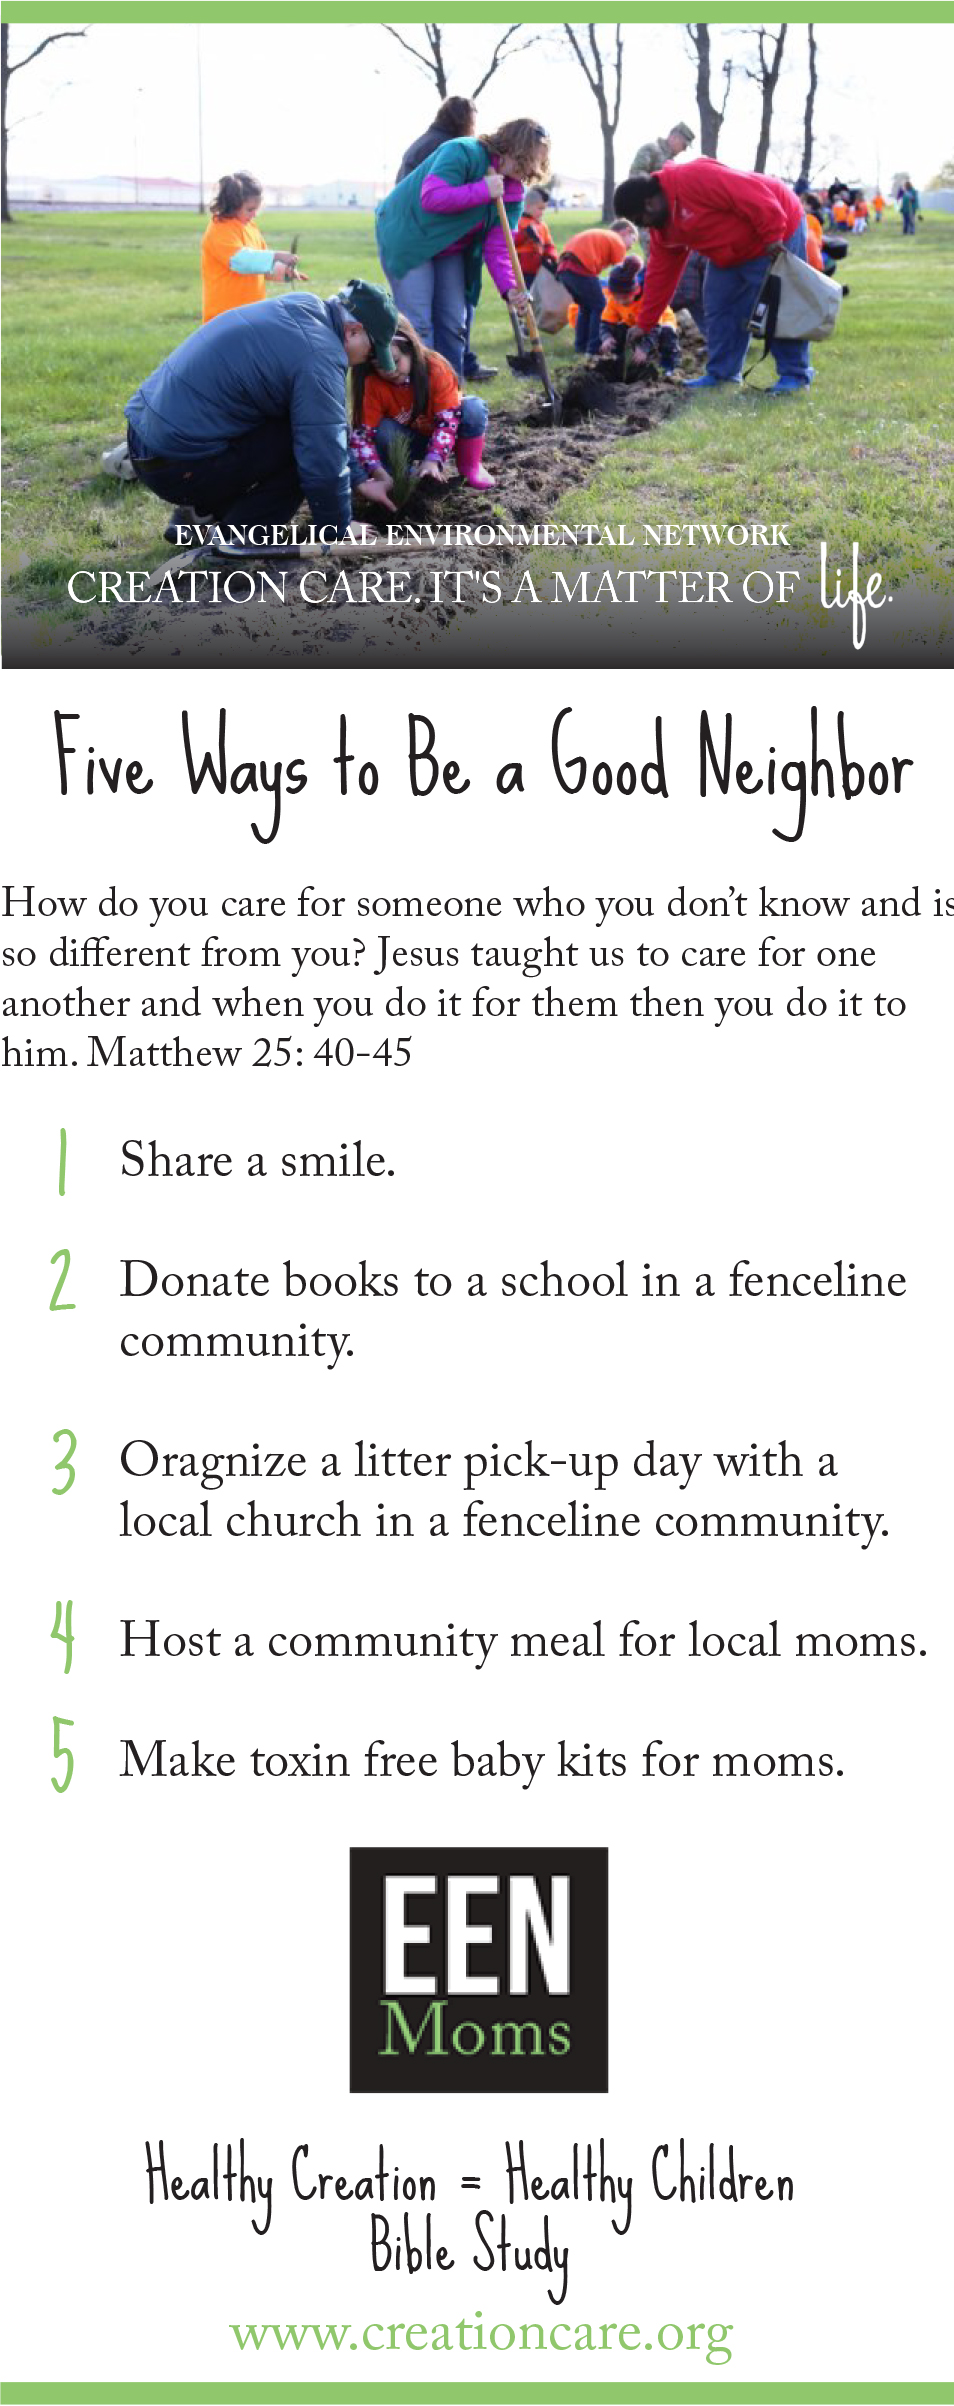 Find Your Fire - Being a Good Neighbor